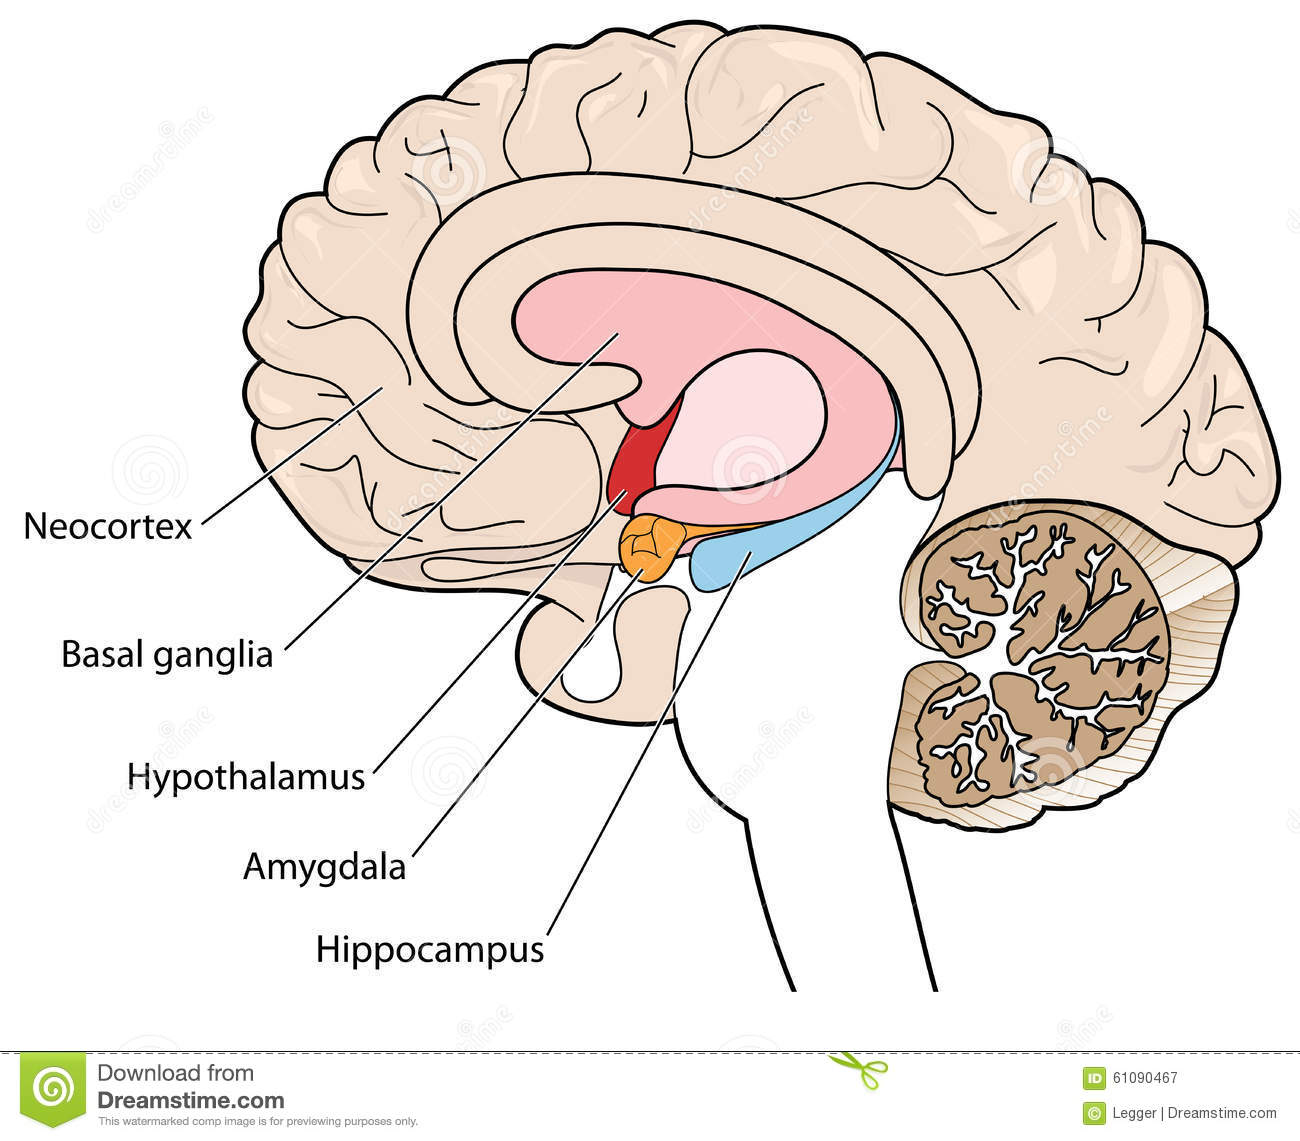 cross section of brain showing the basal ganglia and hypothalamus